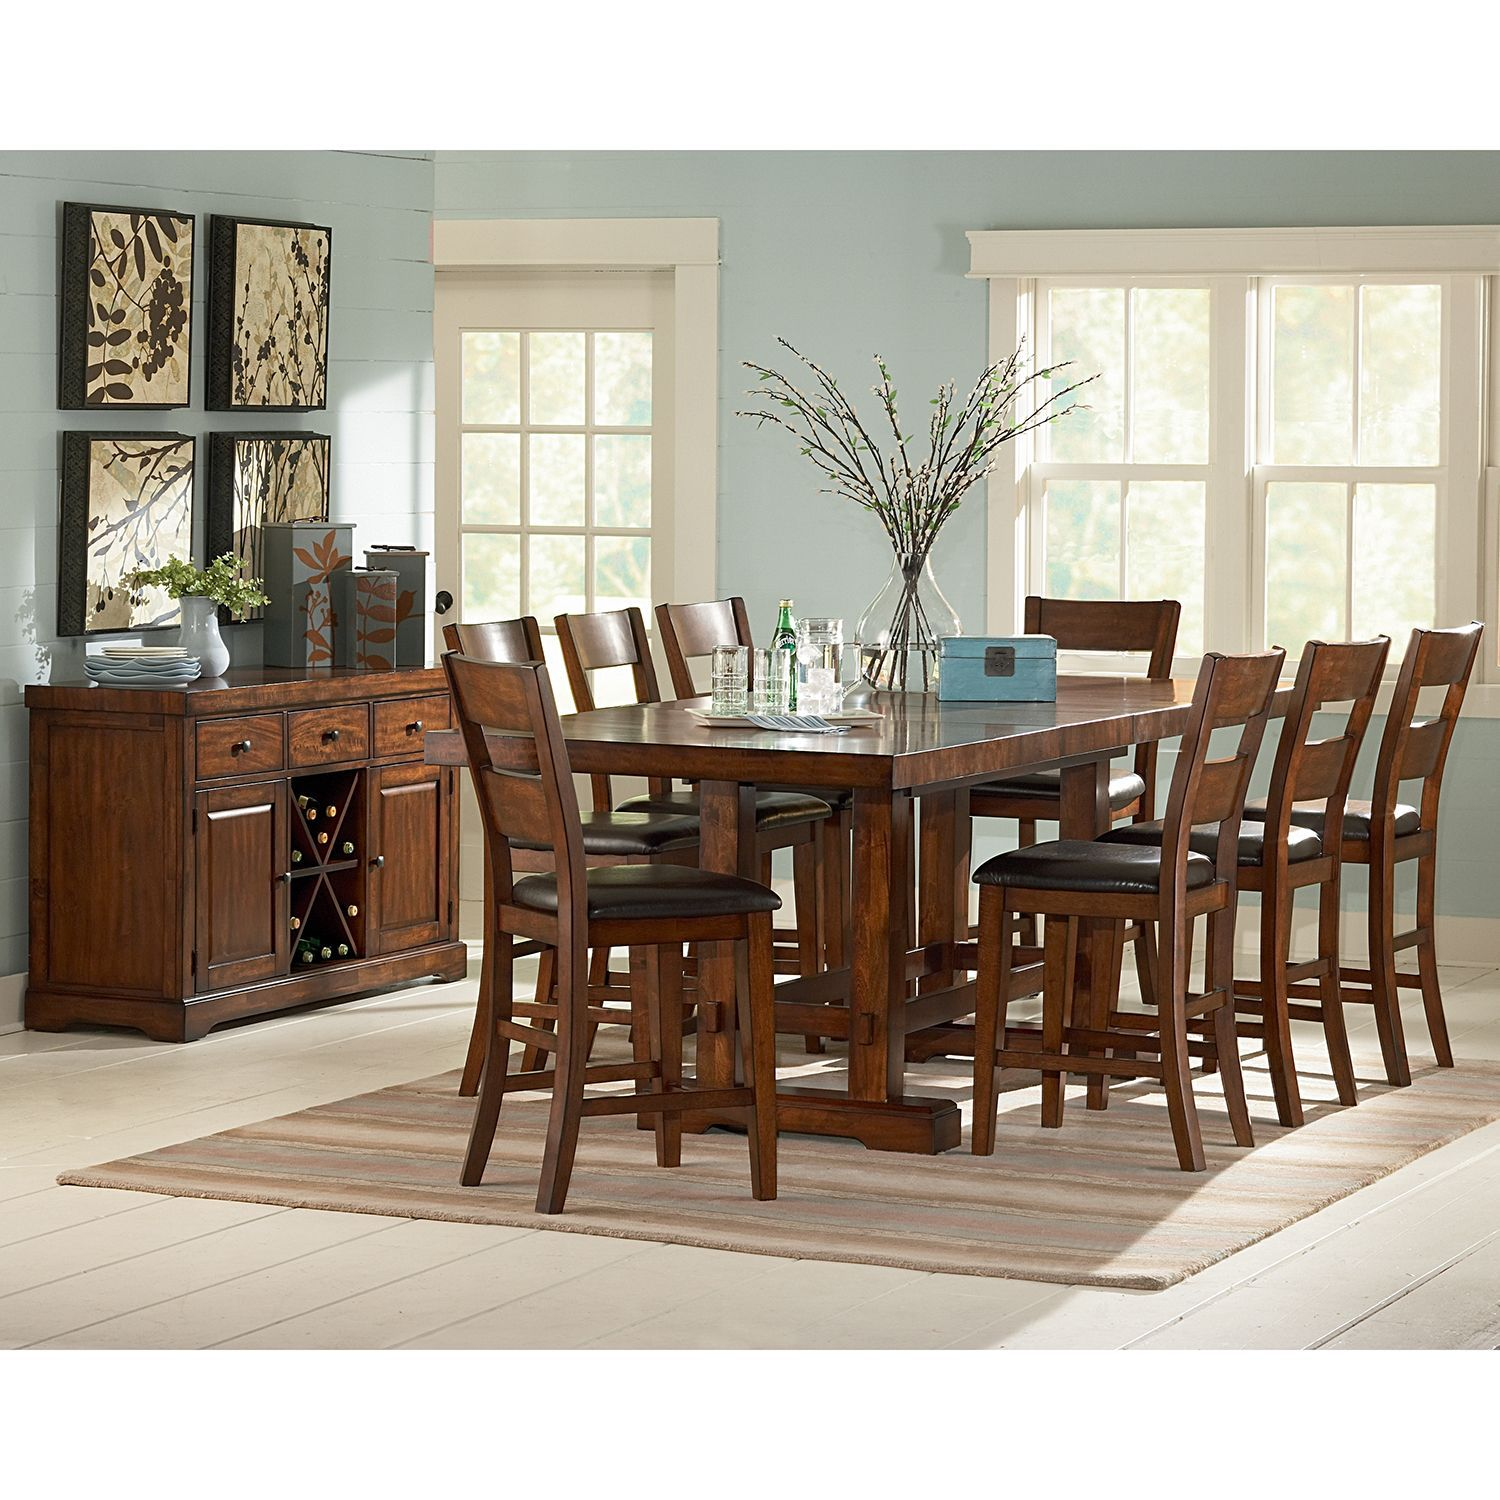 Ziva Counter Height Dining Set 10 Pc Sam S Club Counter